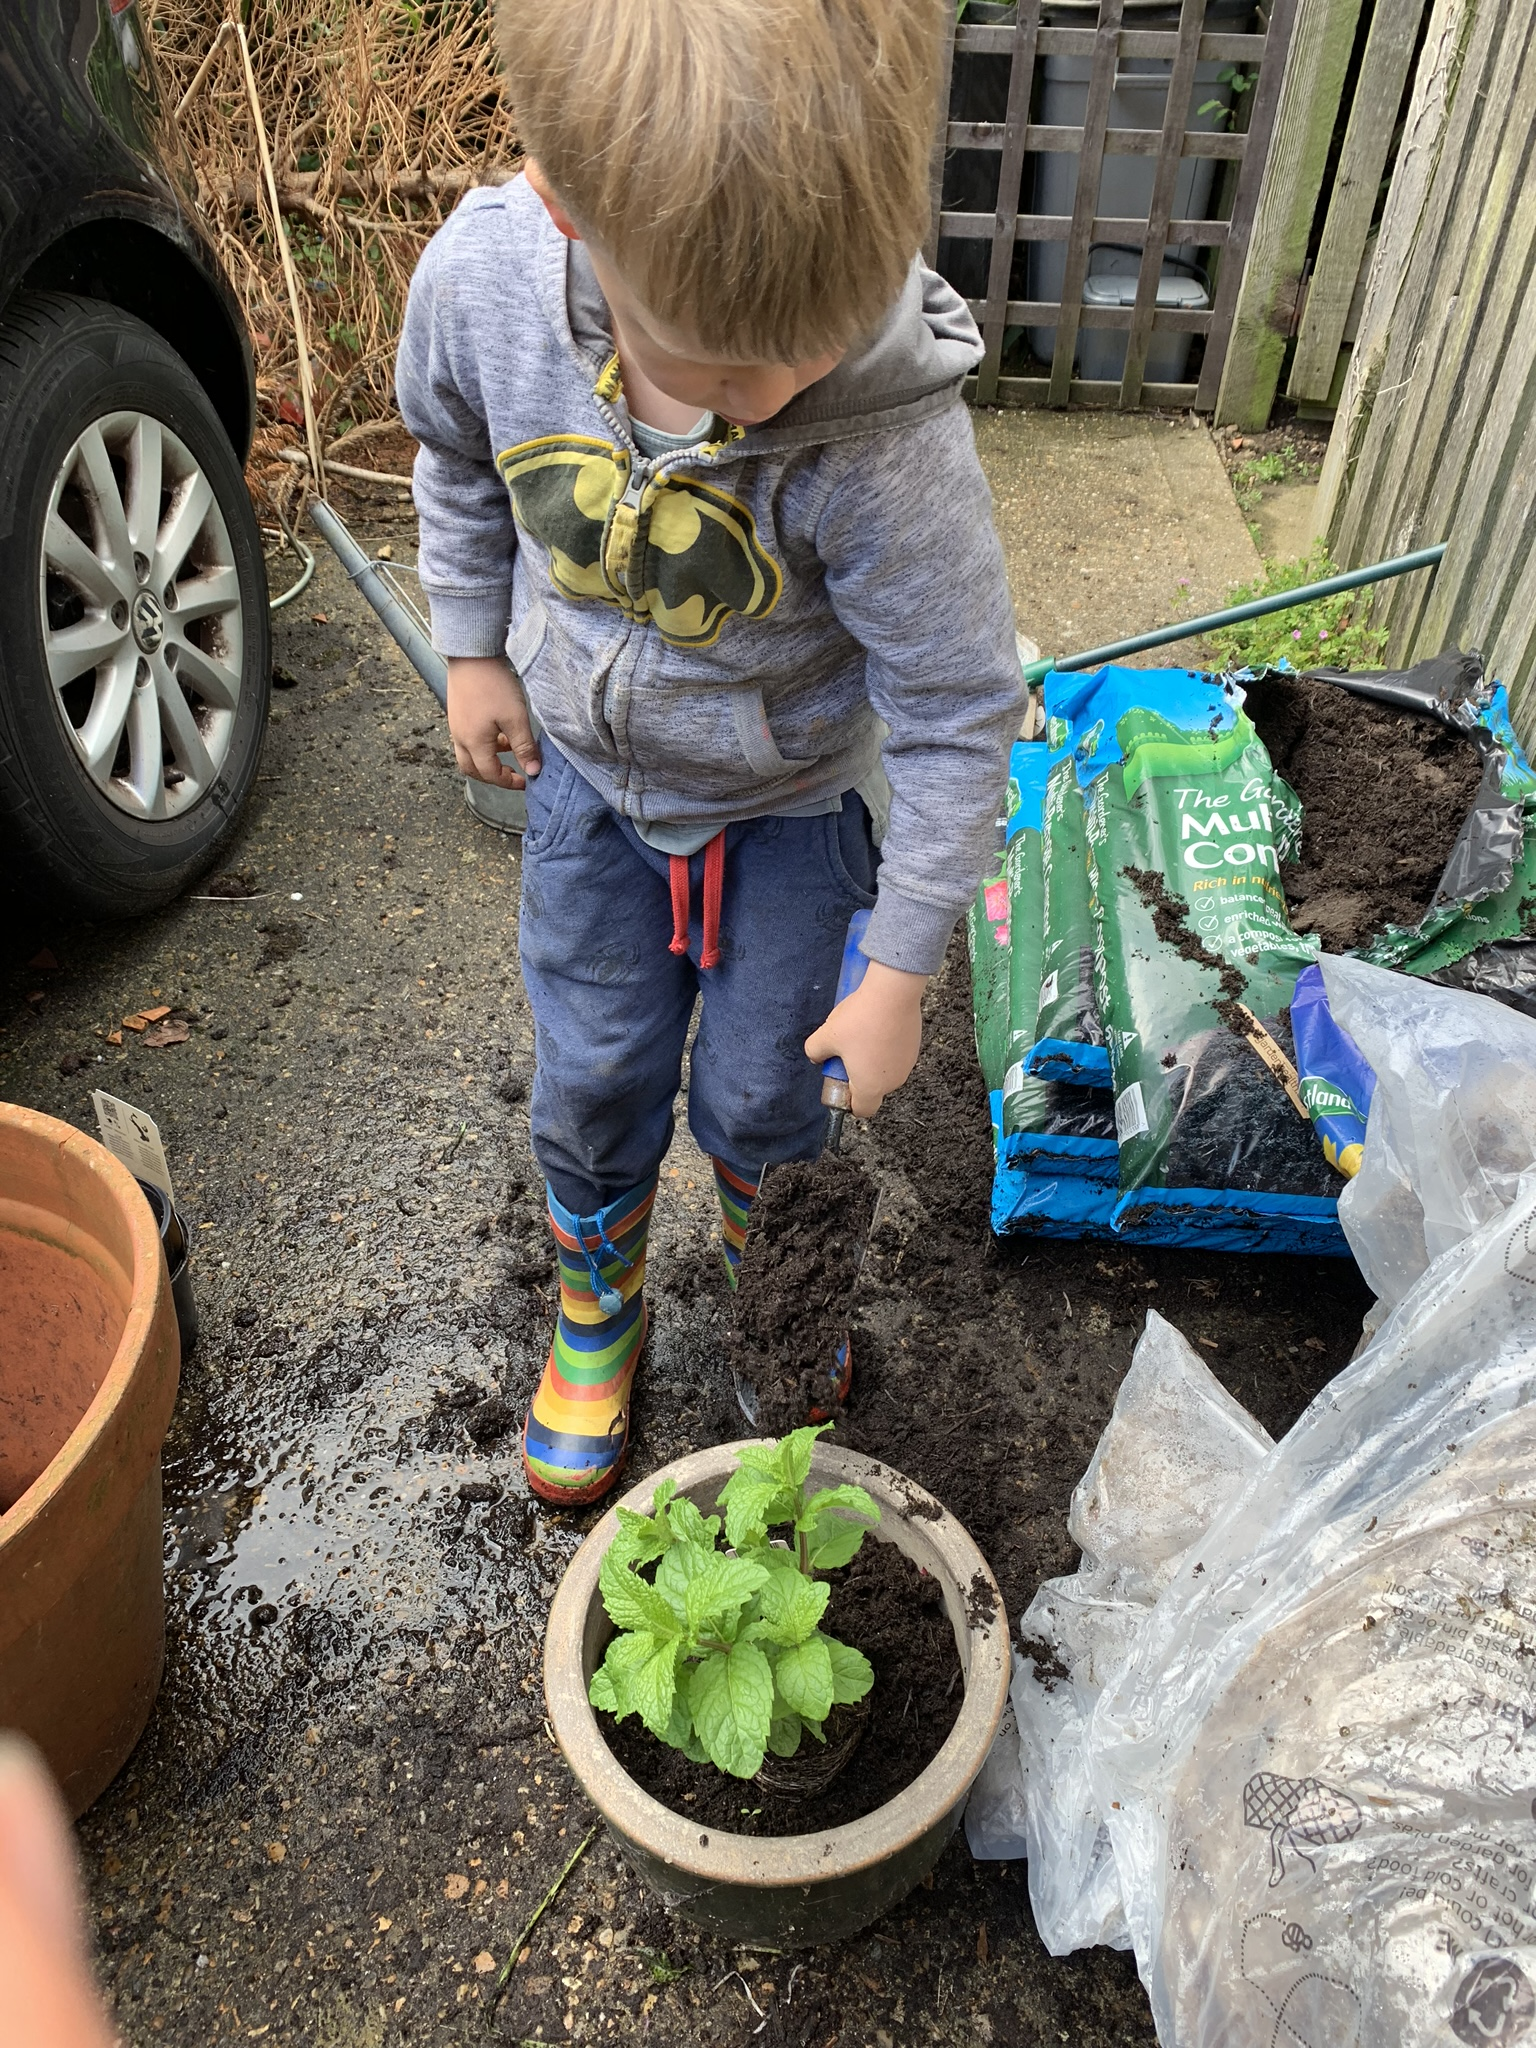 gardening with kids, boy planting flowers in pots